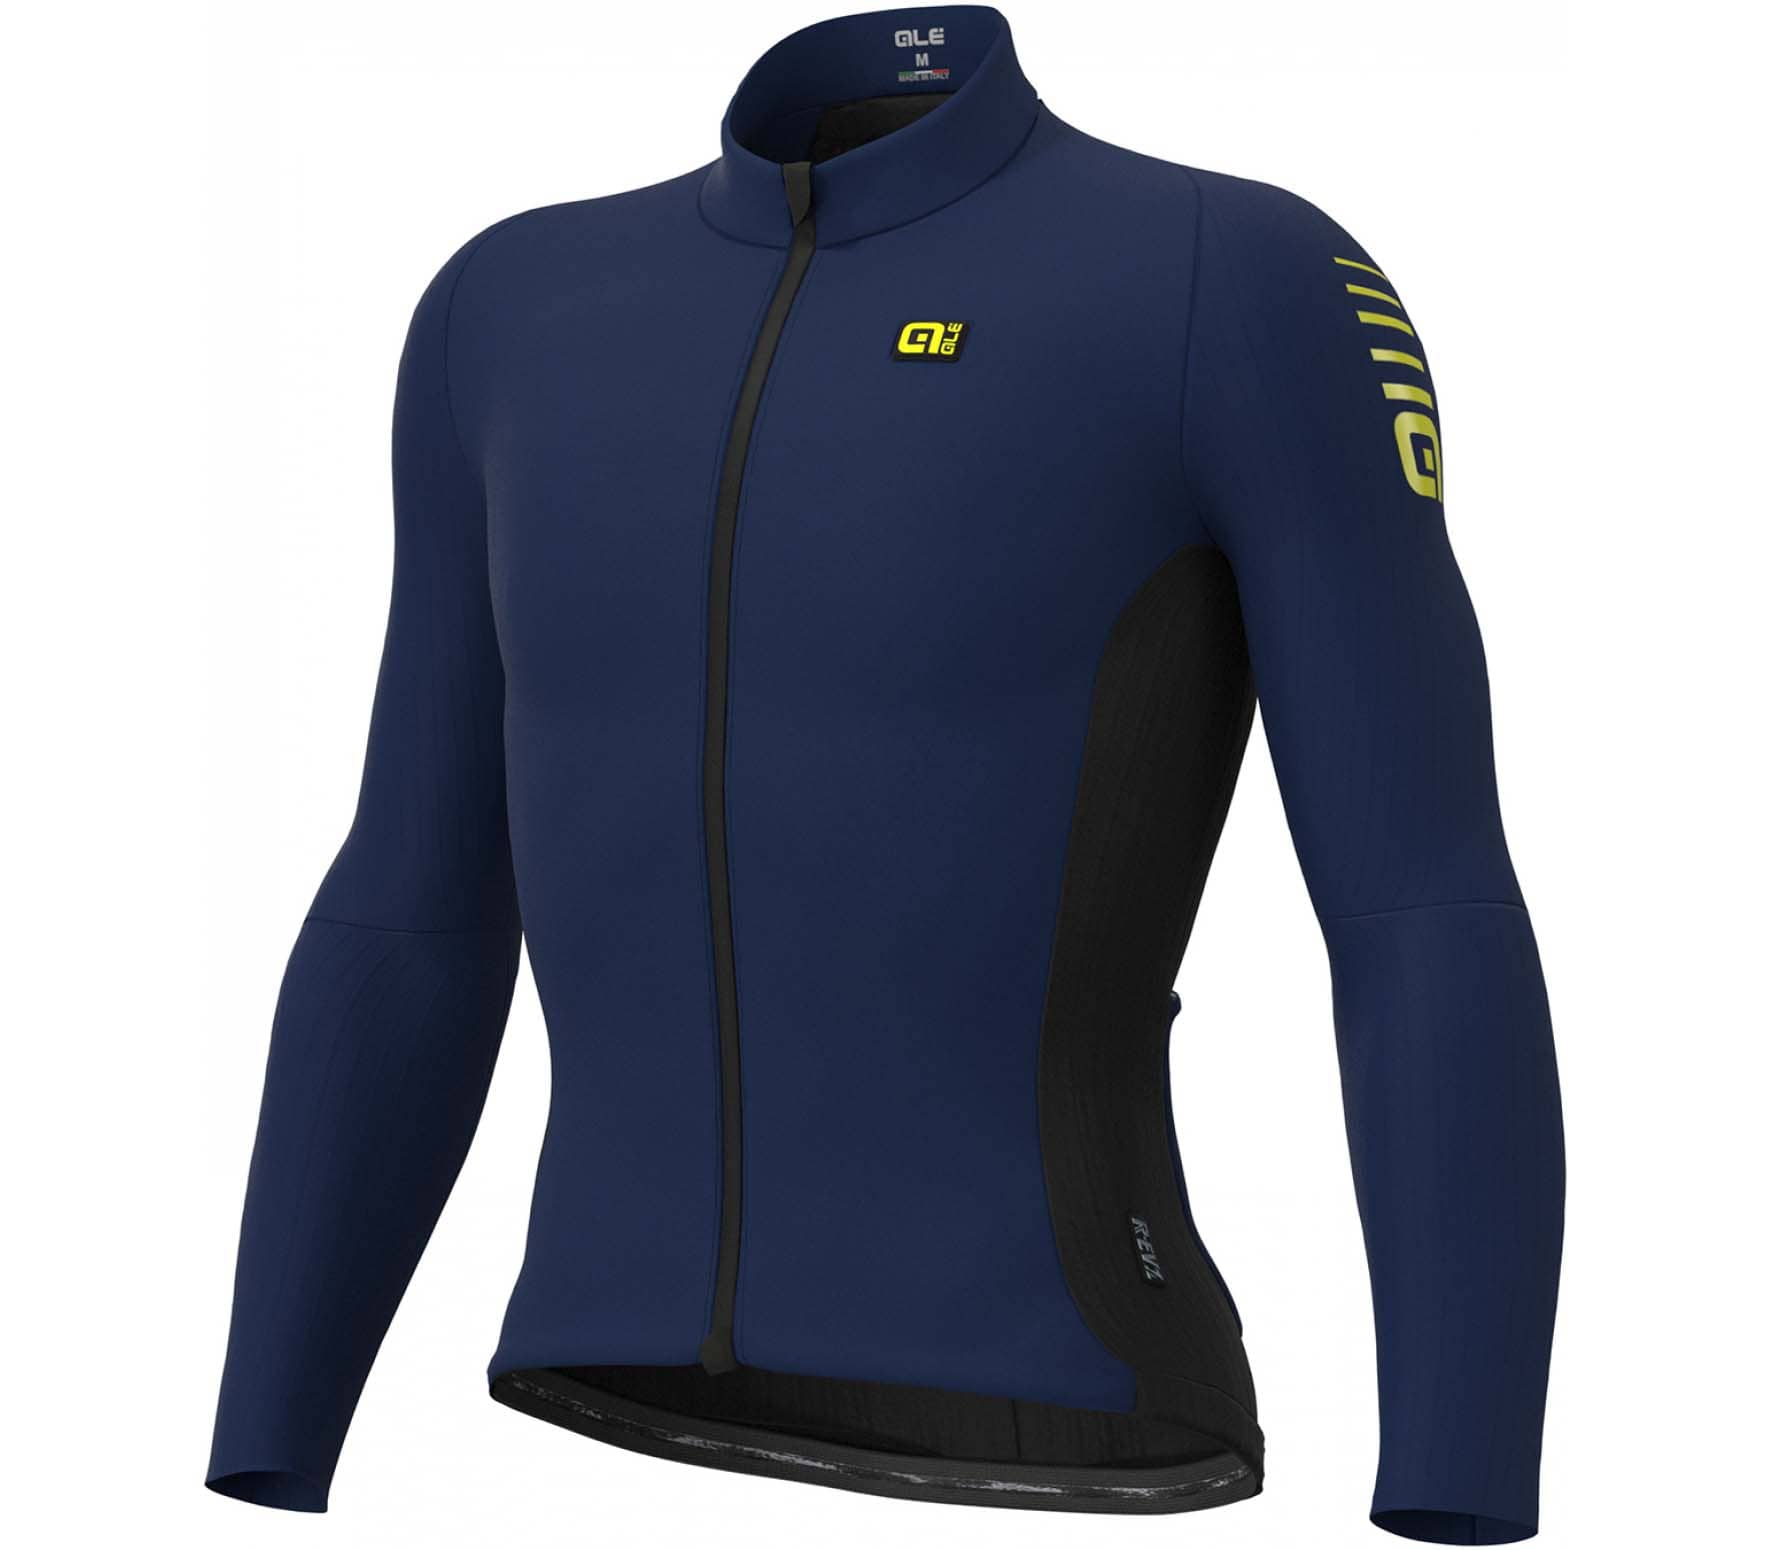 Clima Protection 2.0 Warm Race Herren Radtrikot